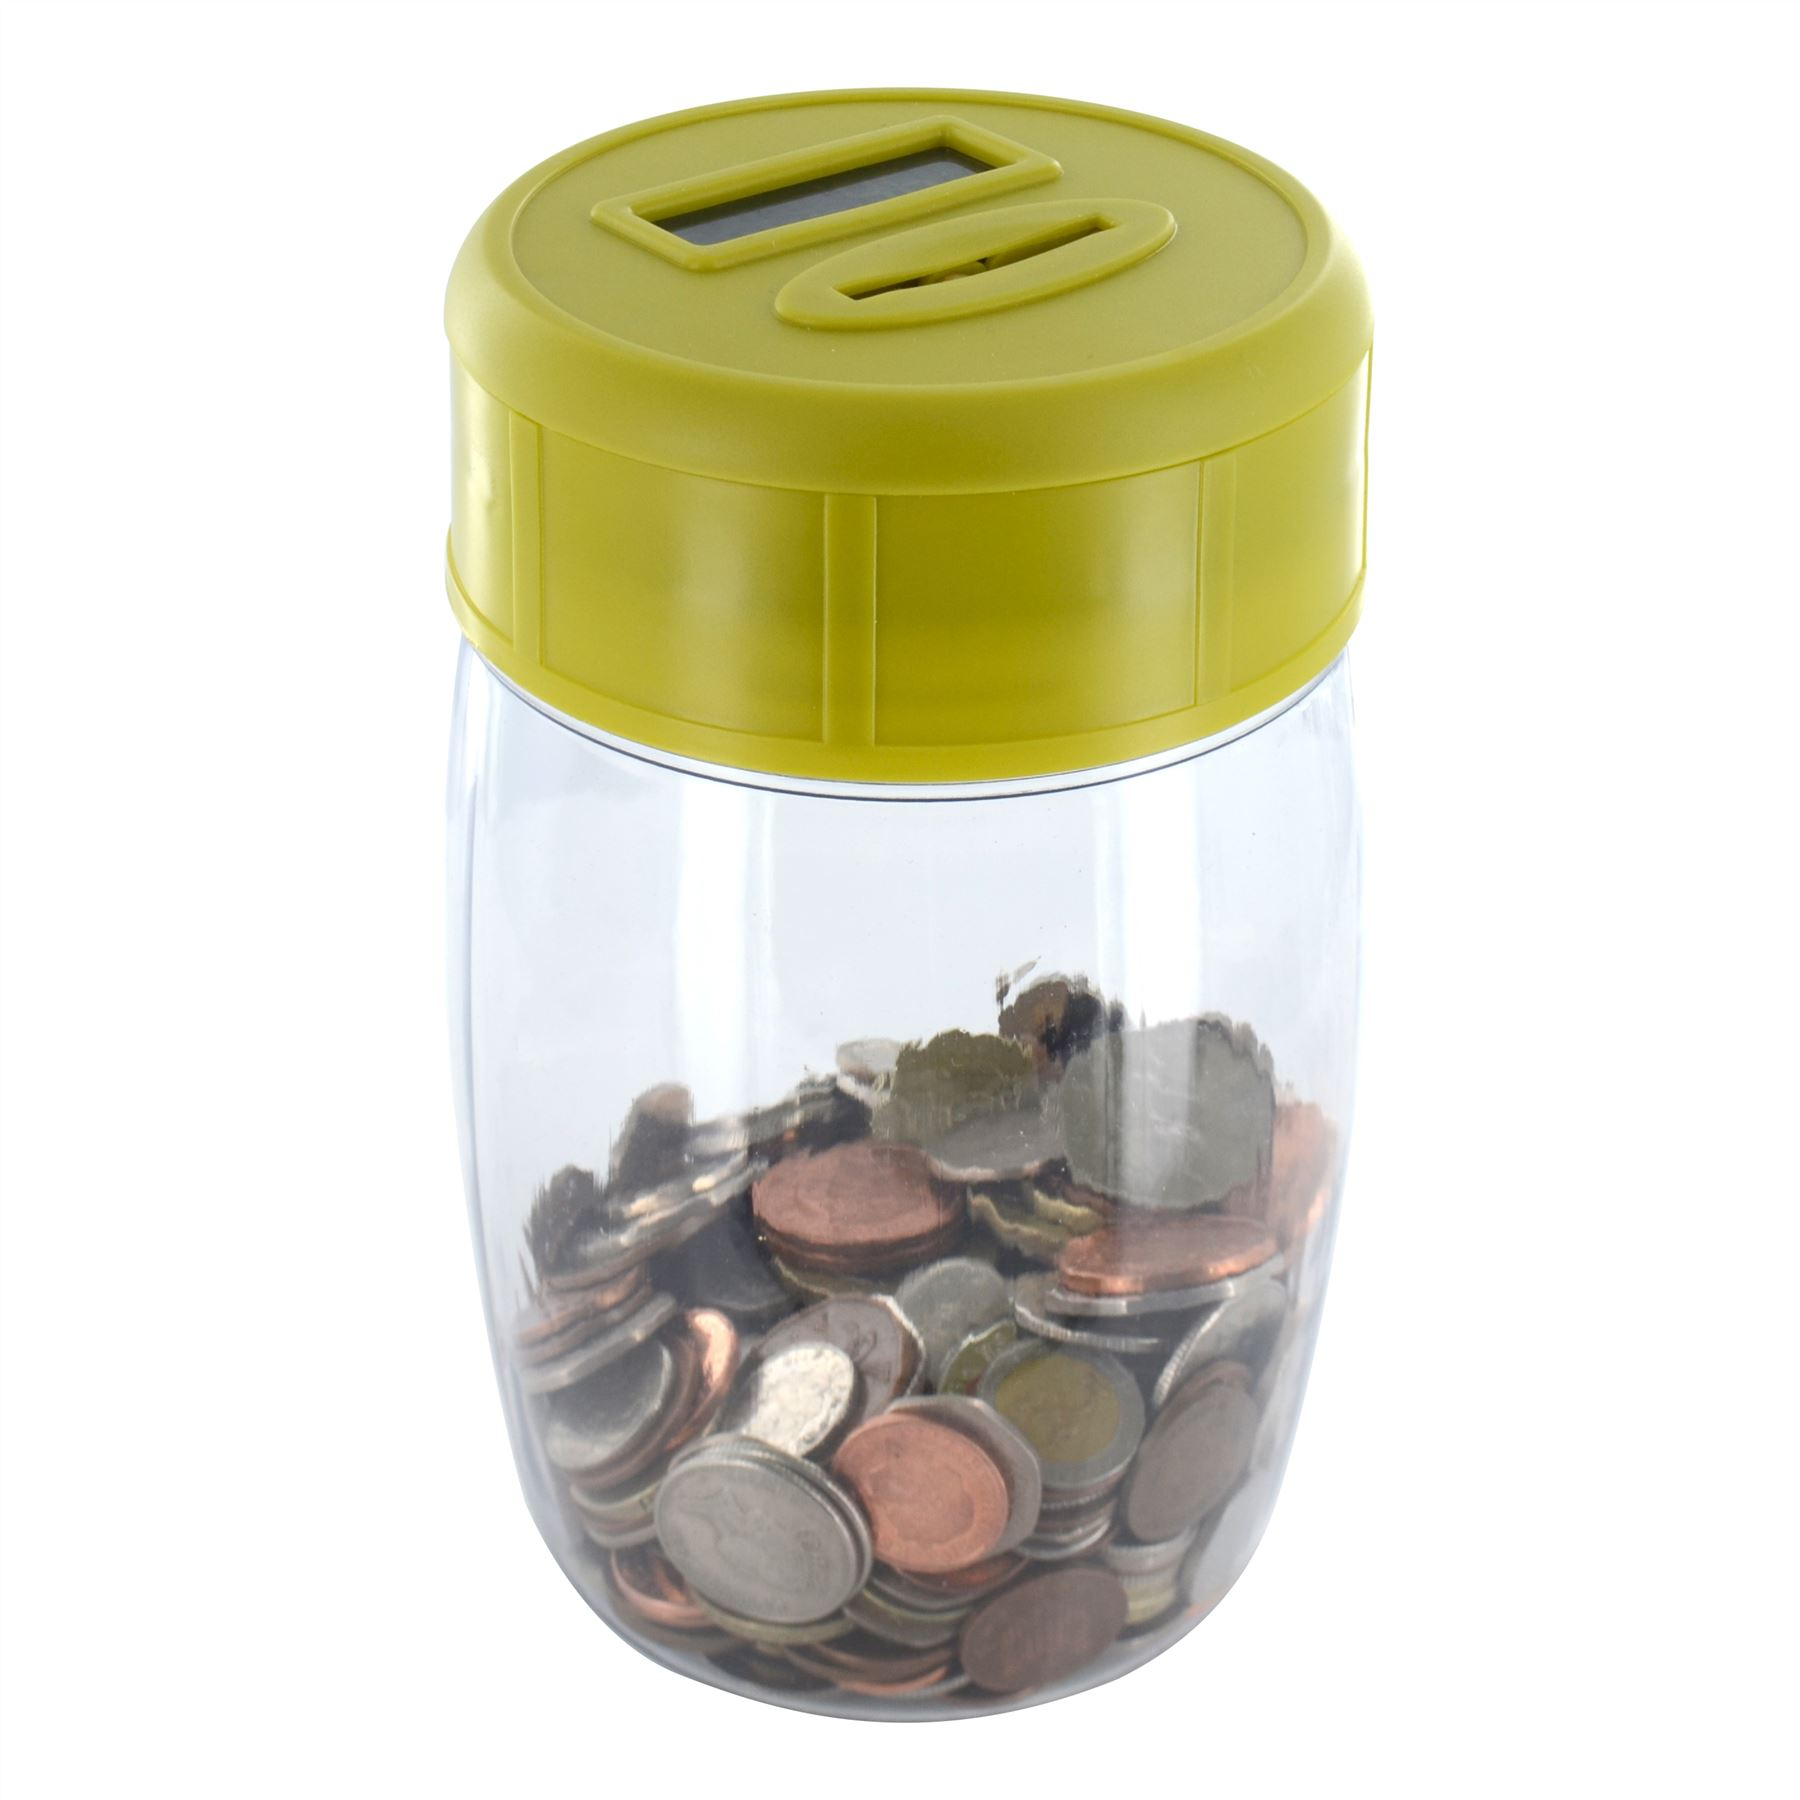 New digital coin counter money piggy bank counting saving jar box lcd display ebay - Coin bank that counts money ...